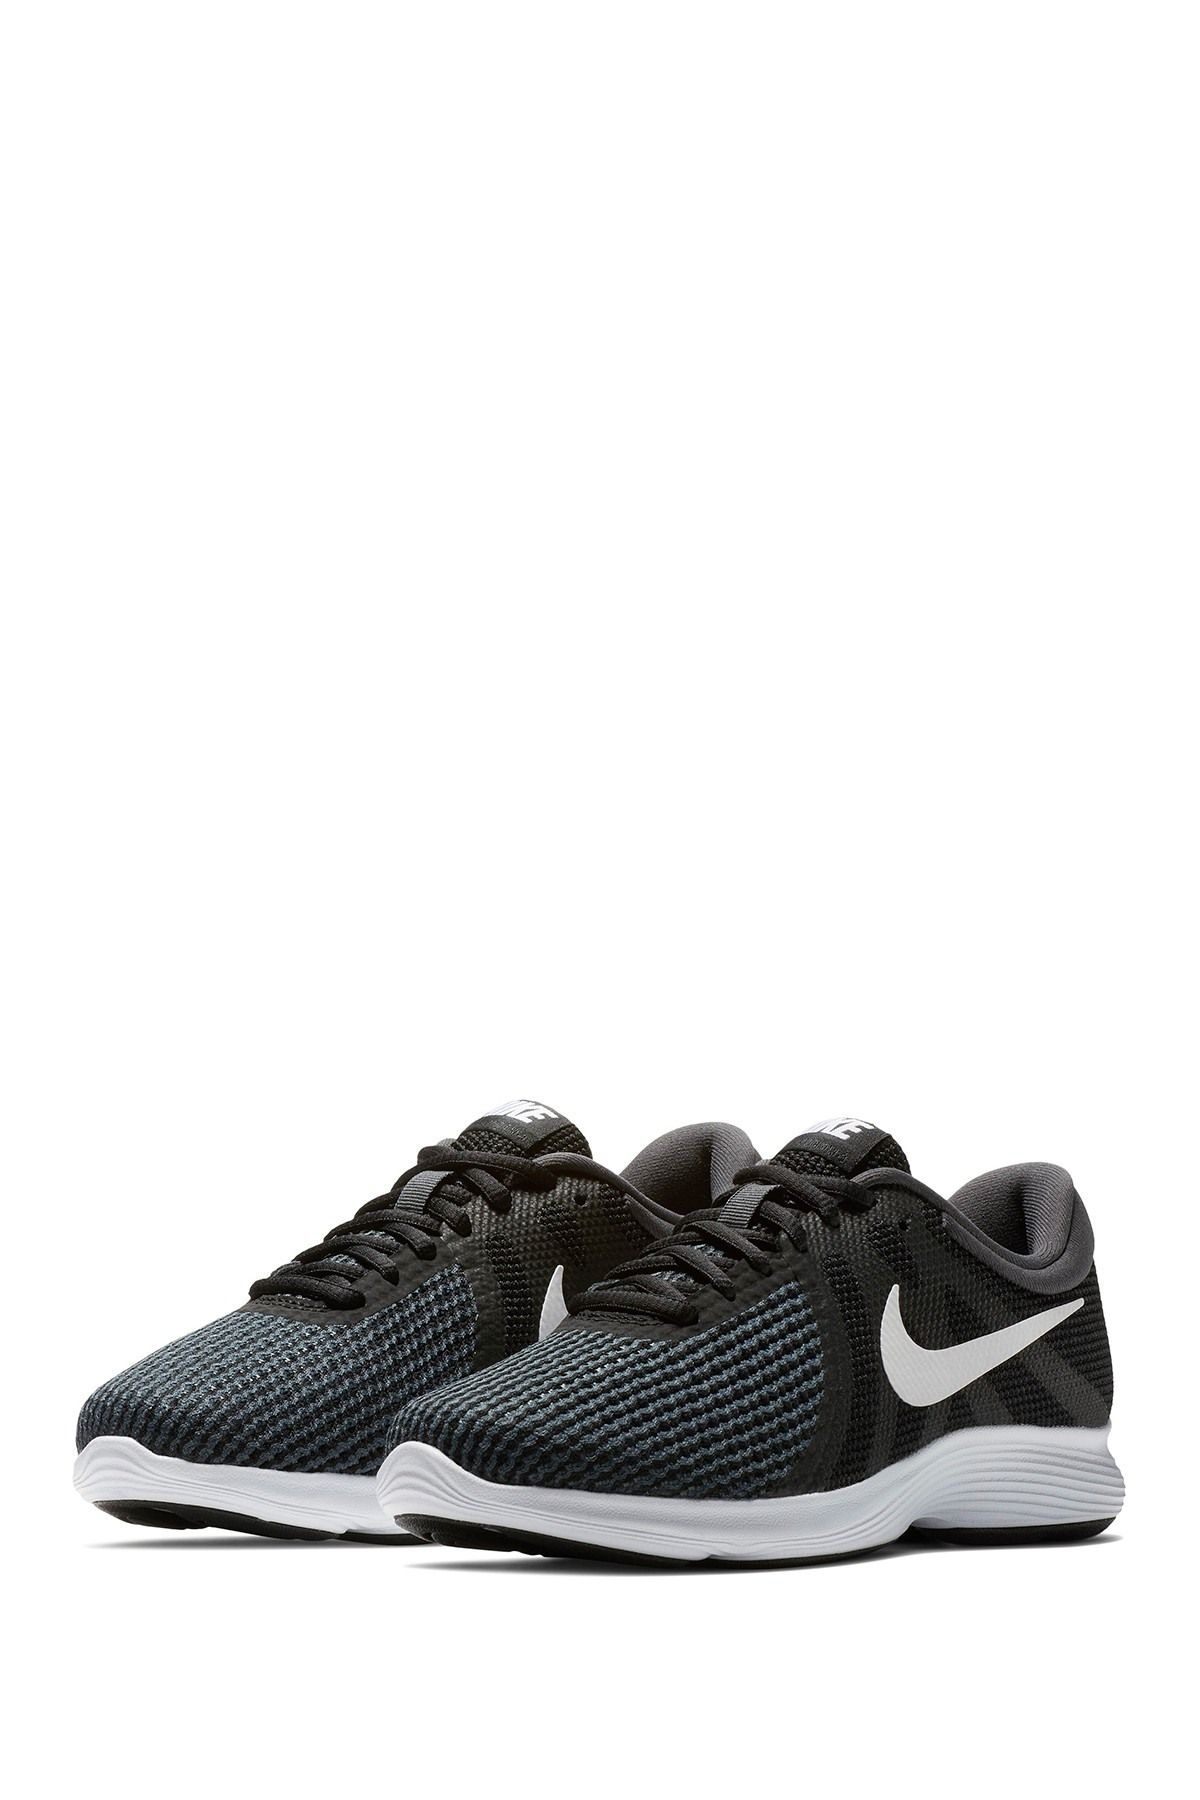 Nike Running Trainer Nike Revolution 4 Running Sneaker Wide Width Available My